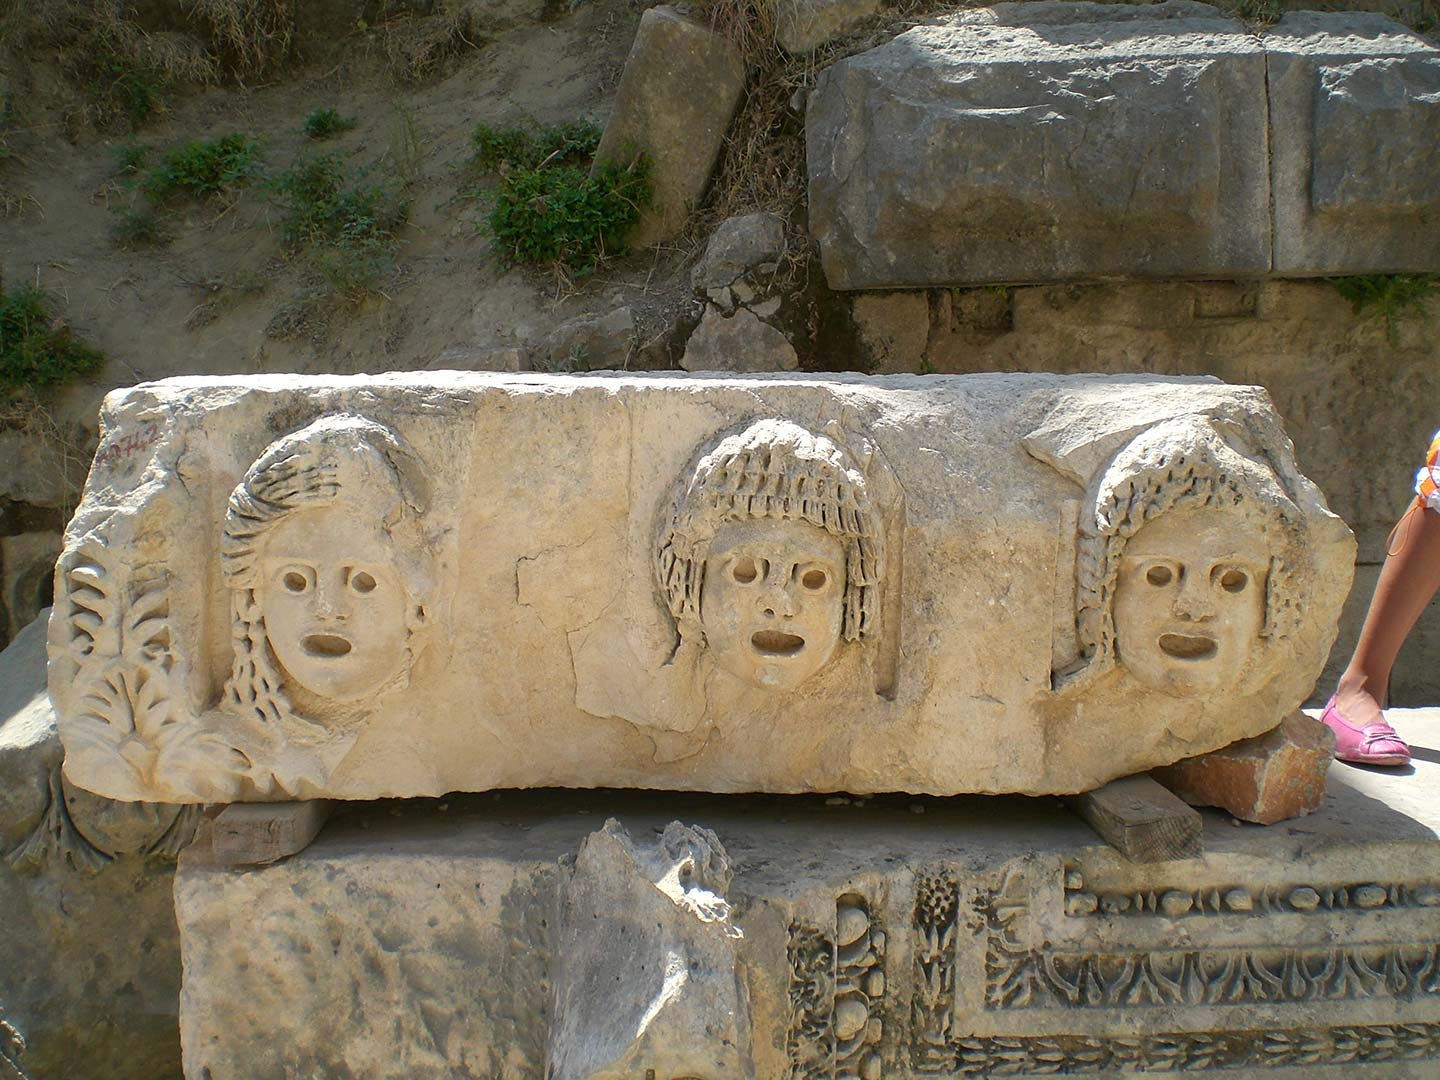 Stone mask carvings at Myra